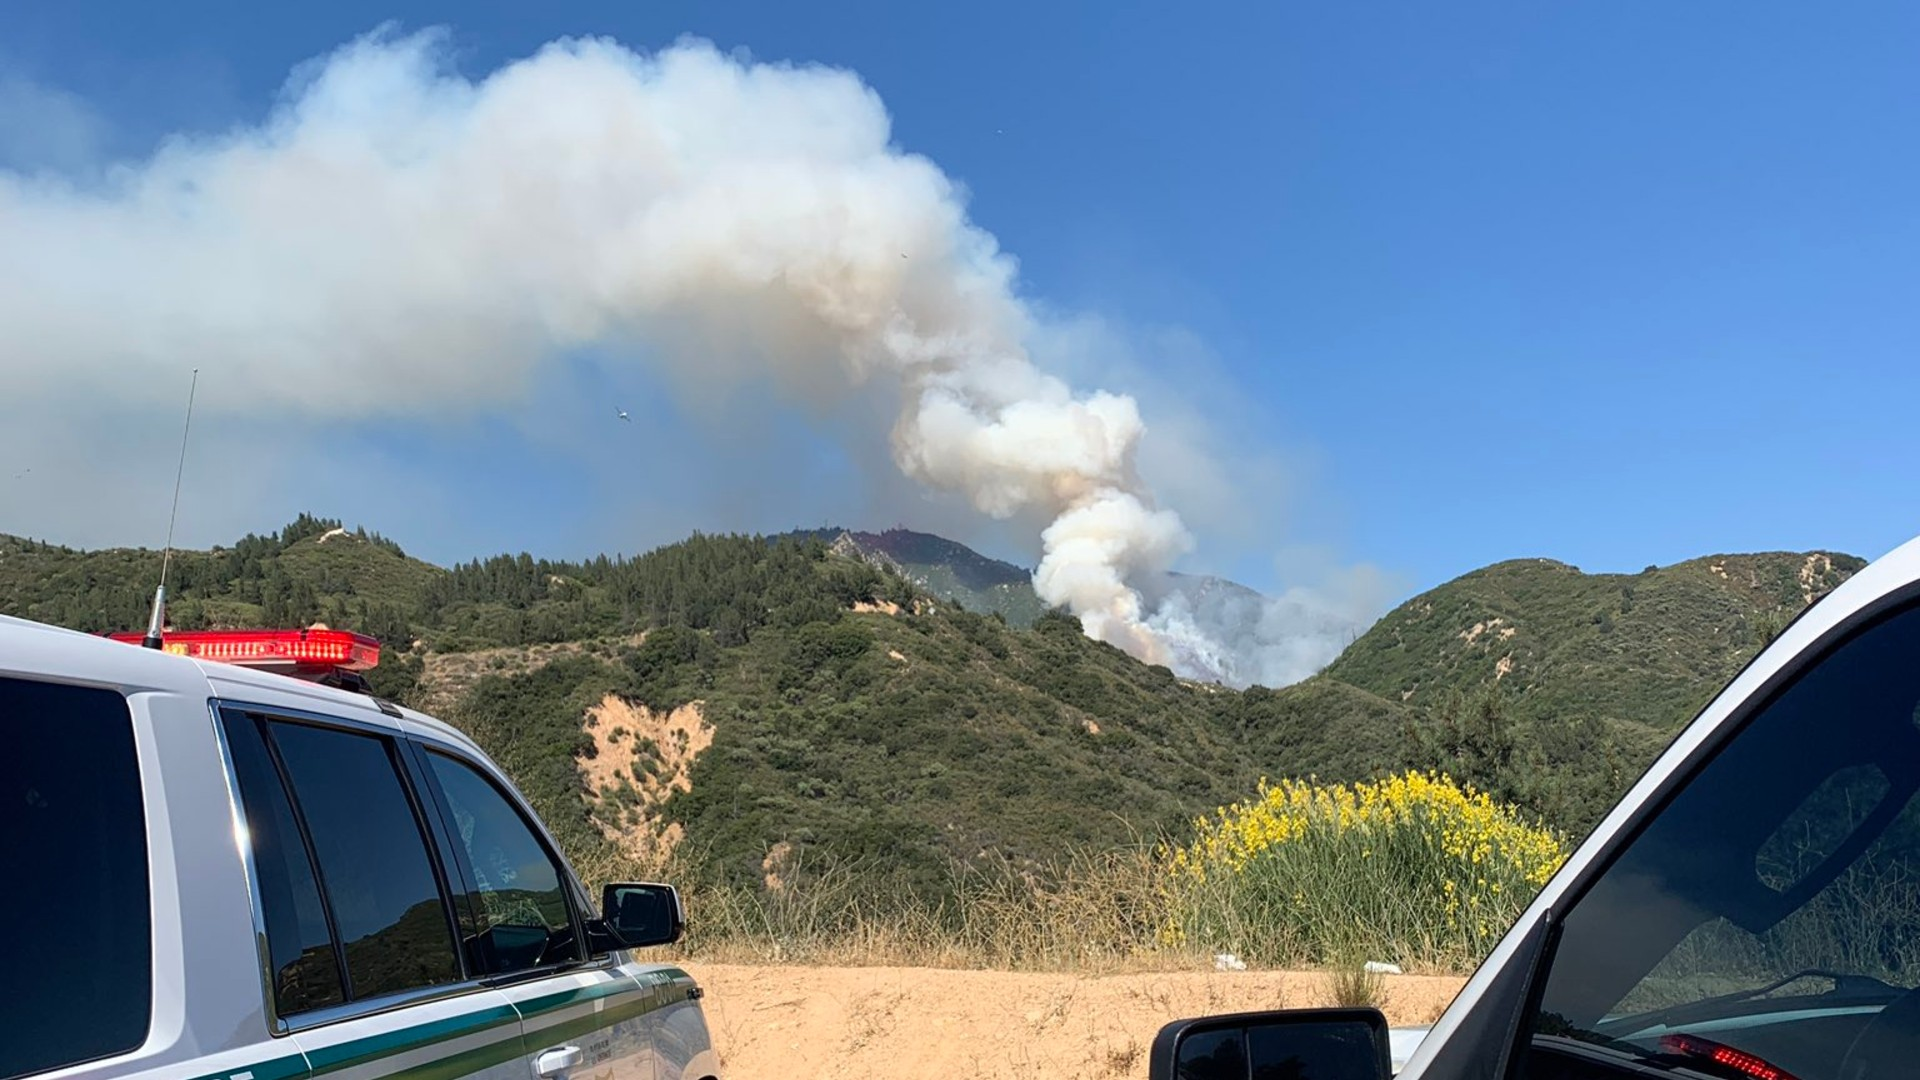 The Mount R Fire is seen in an image posted on the San Bernardino National Forest Twitter account.